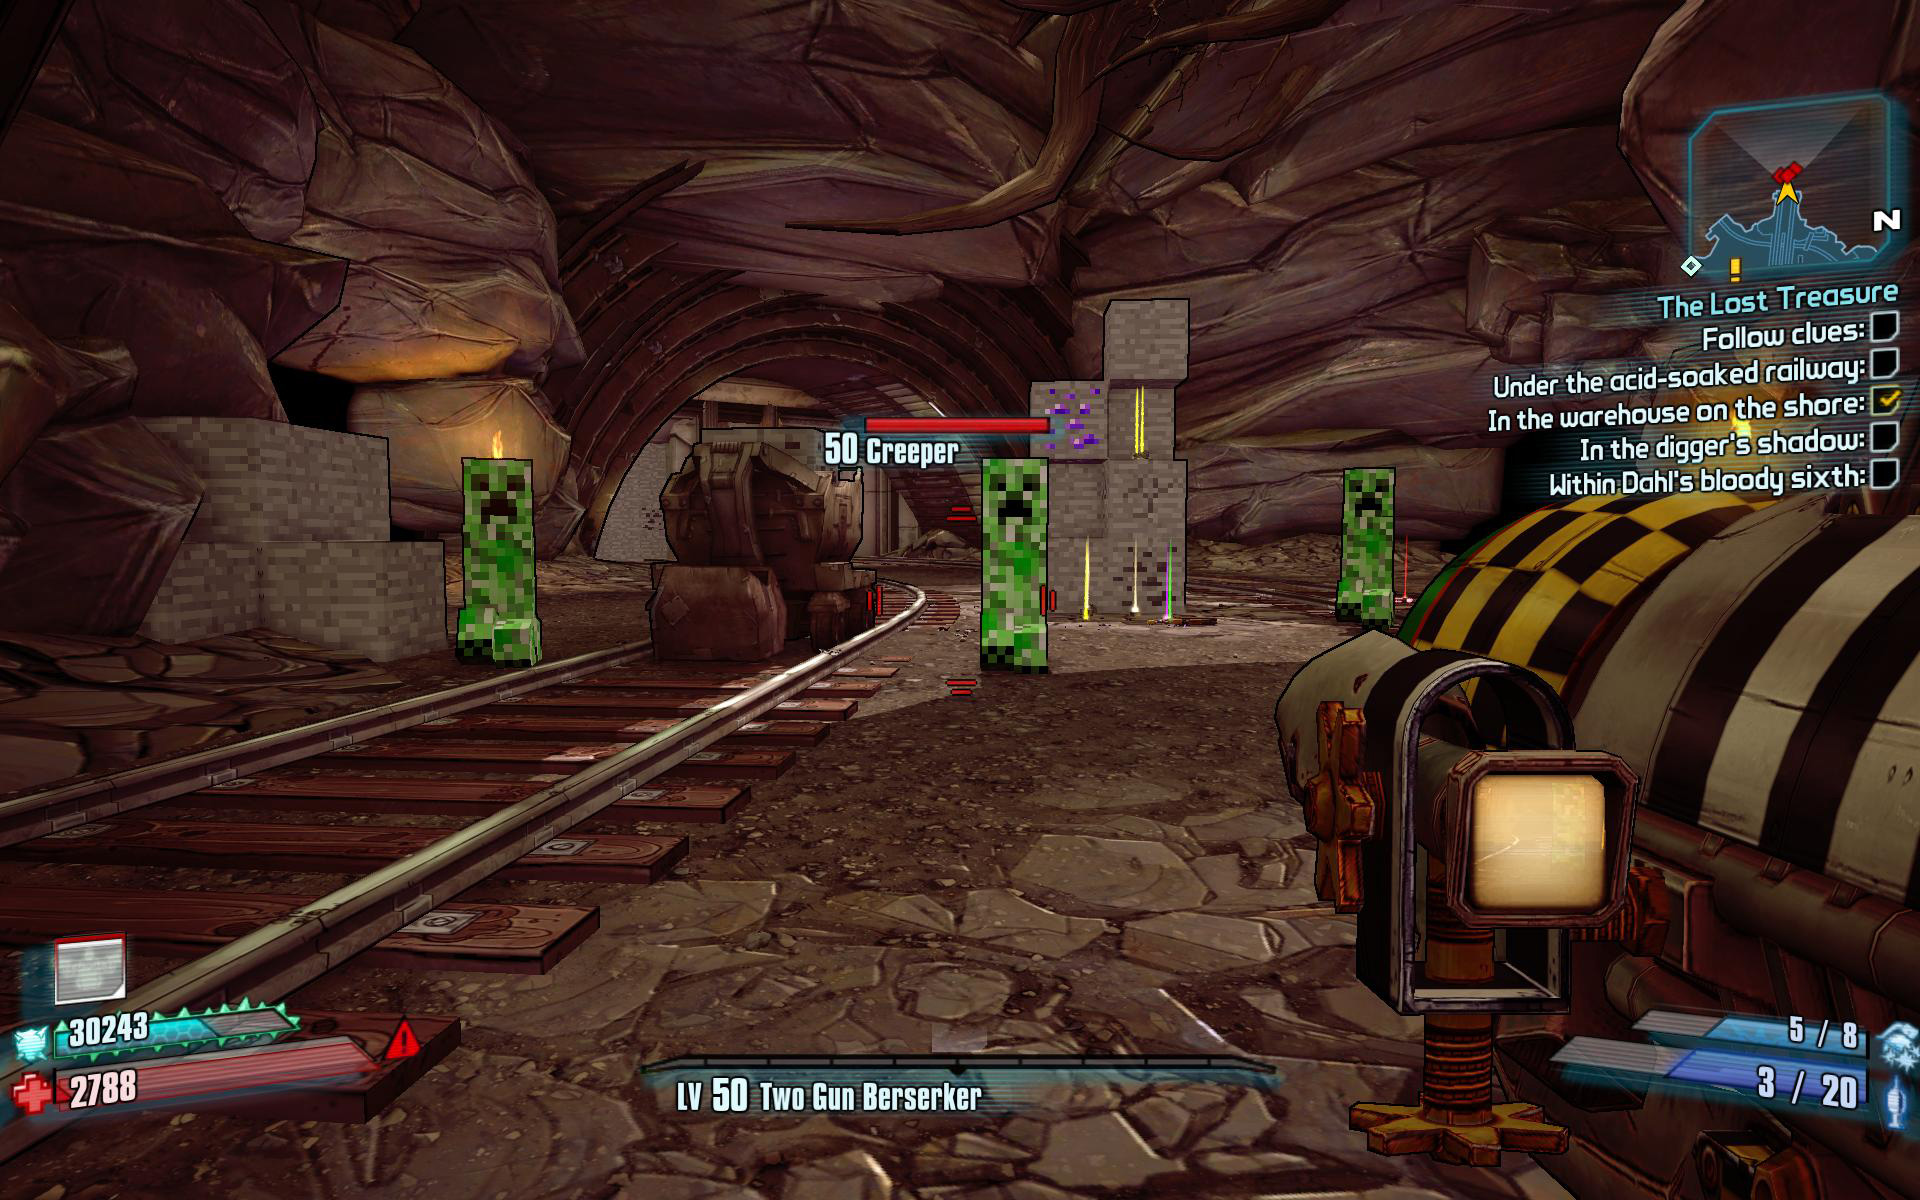 Borderlands2 GTX 660 SLI vs. GTX 680 vs. HD 7970 GHz   Value & Performance Evaluation